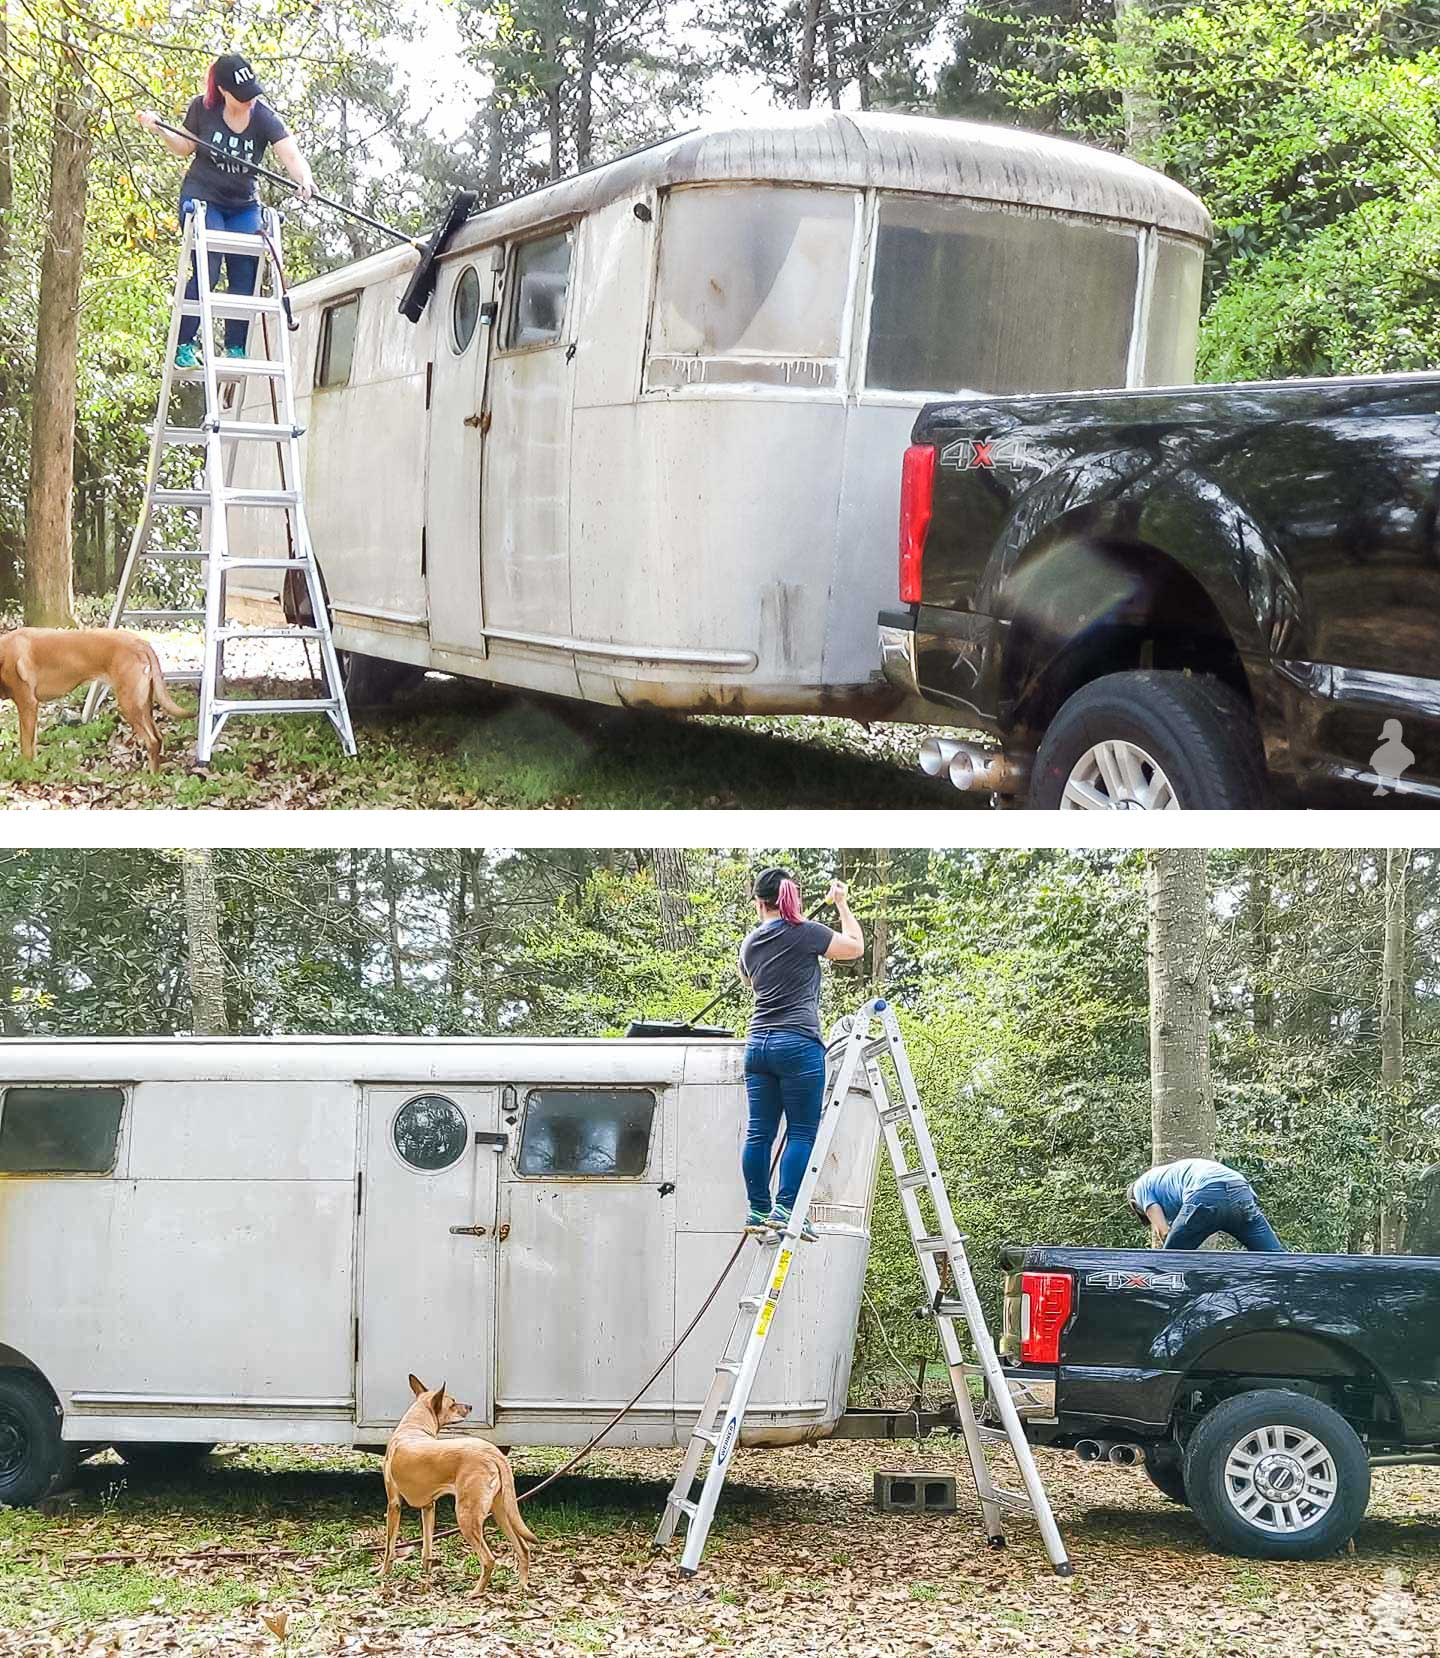 Rubys-Revival-scrubbing-the-roof-of-the-trailer